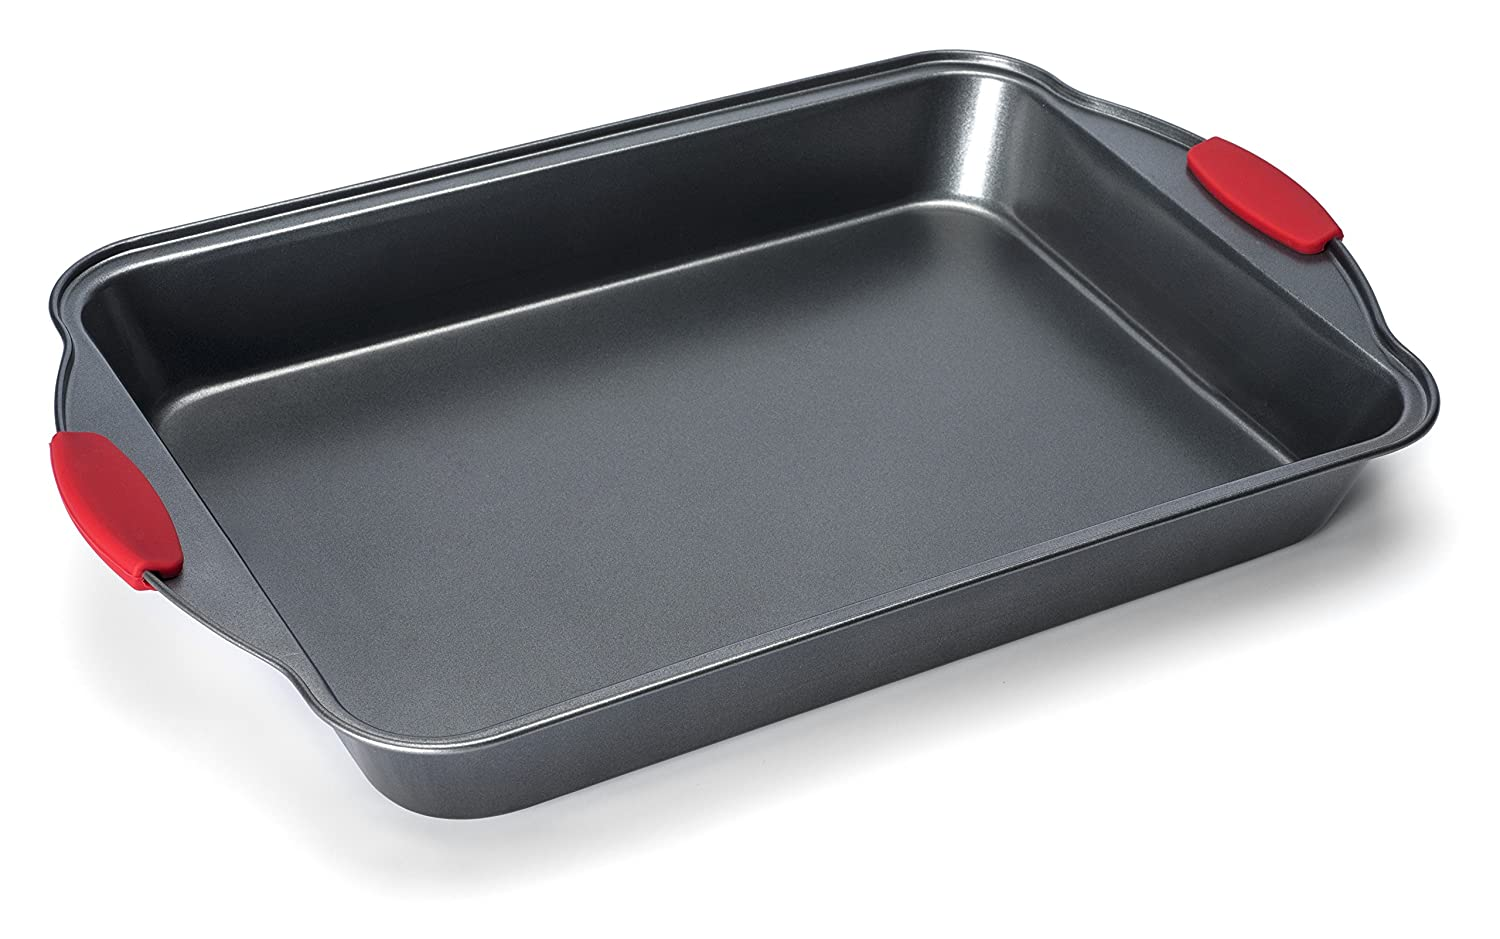 Elite Bakeware Extra Large All Purpose Baking Pan (2 Pack) with Ultra Nonstick Coating and Sure Grip Handles - Premium Baking Pan - Cookie Sheet - Cake Pan - Roasting Pan (Quantity of 2)